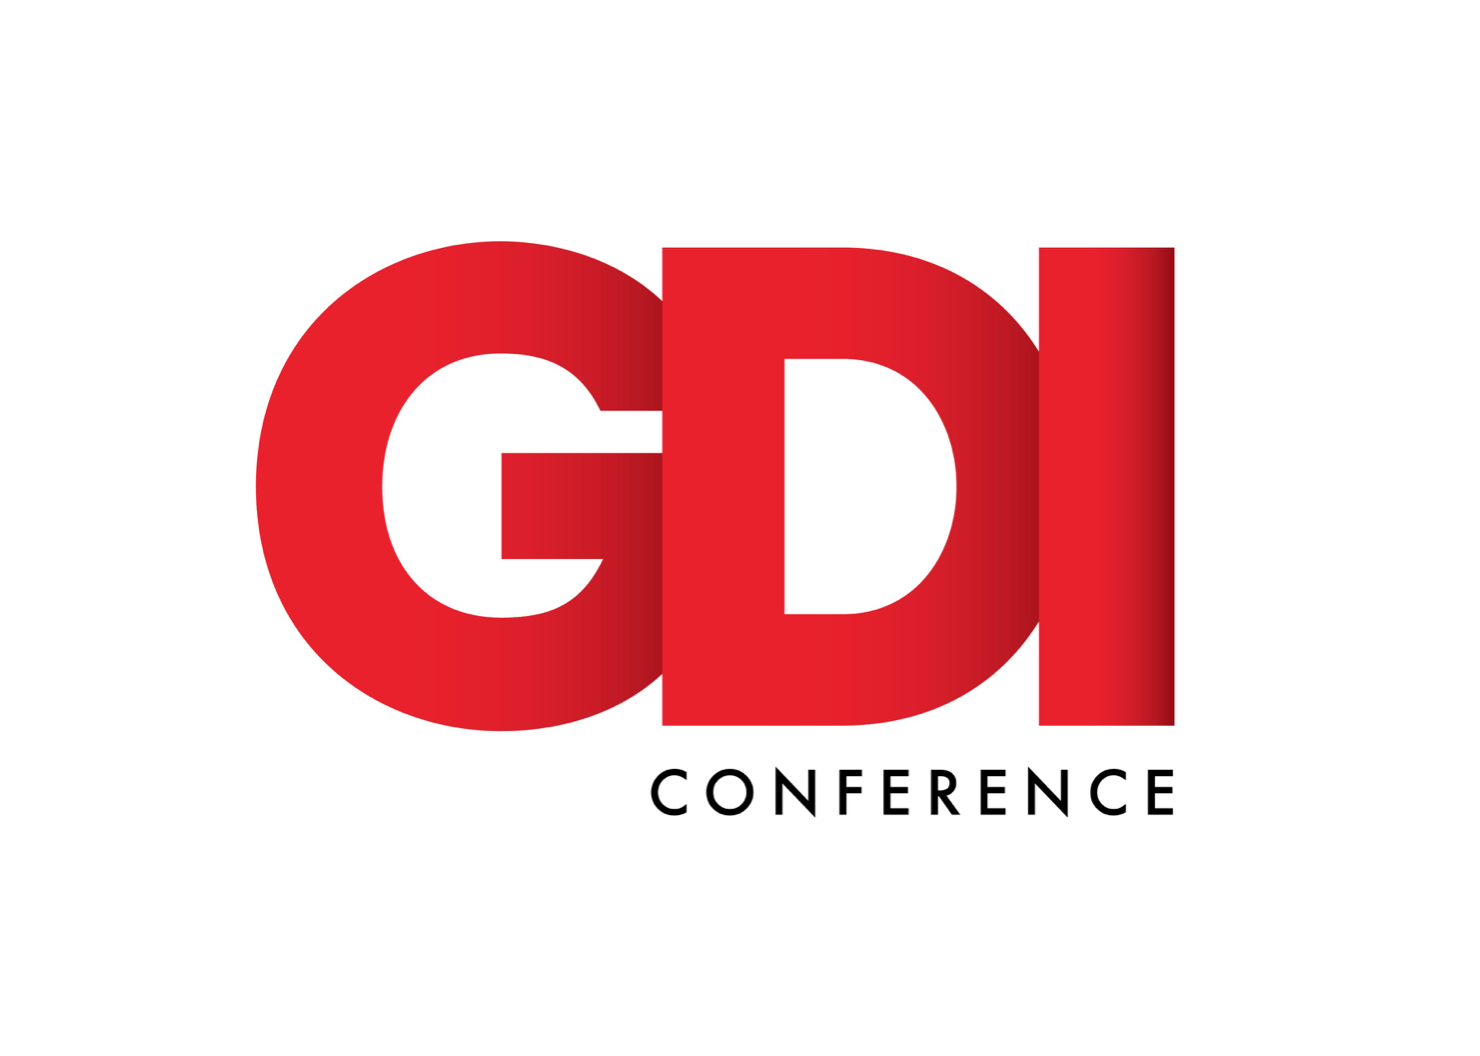 GDI London 17 Attendees Can Now Request Slides From Event